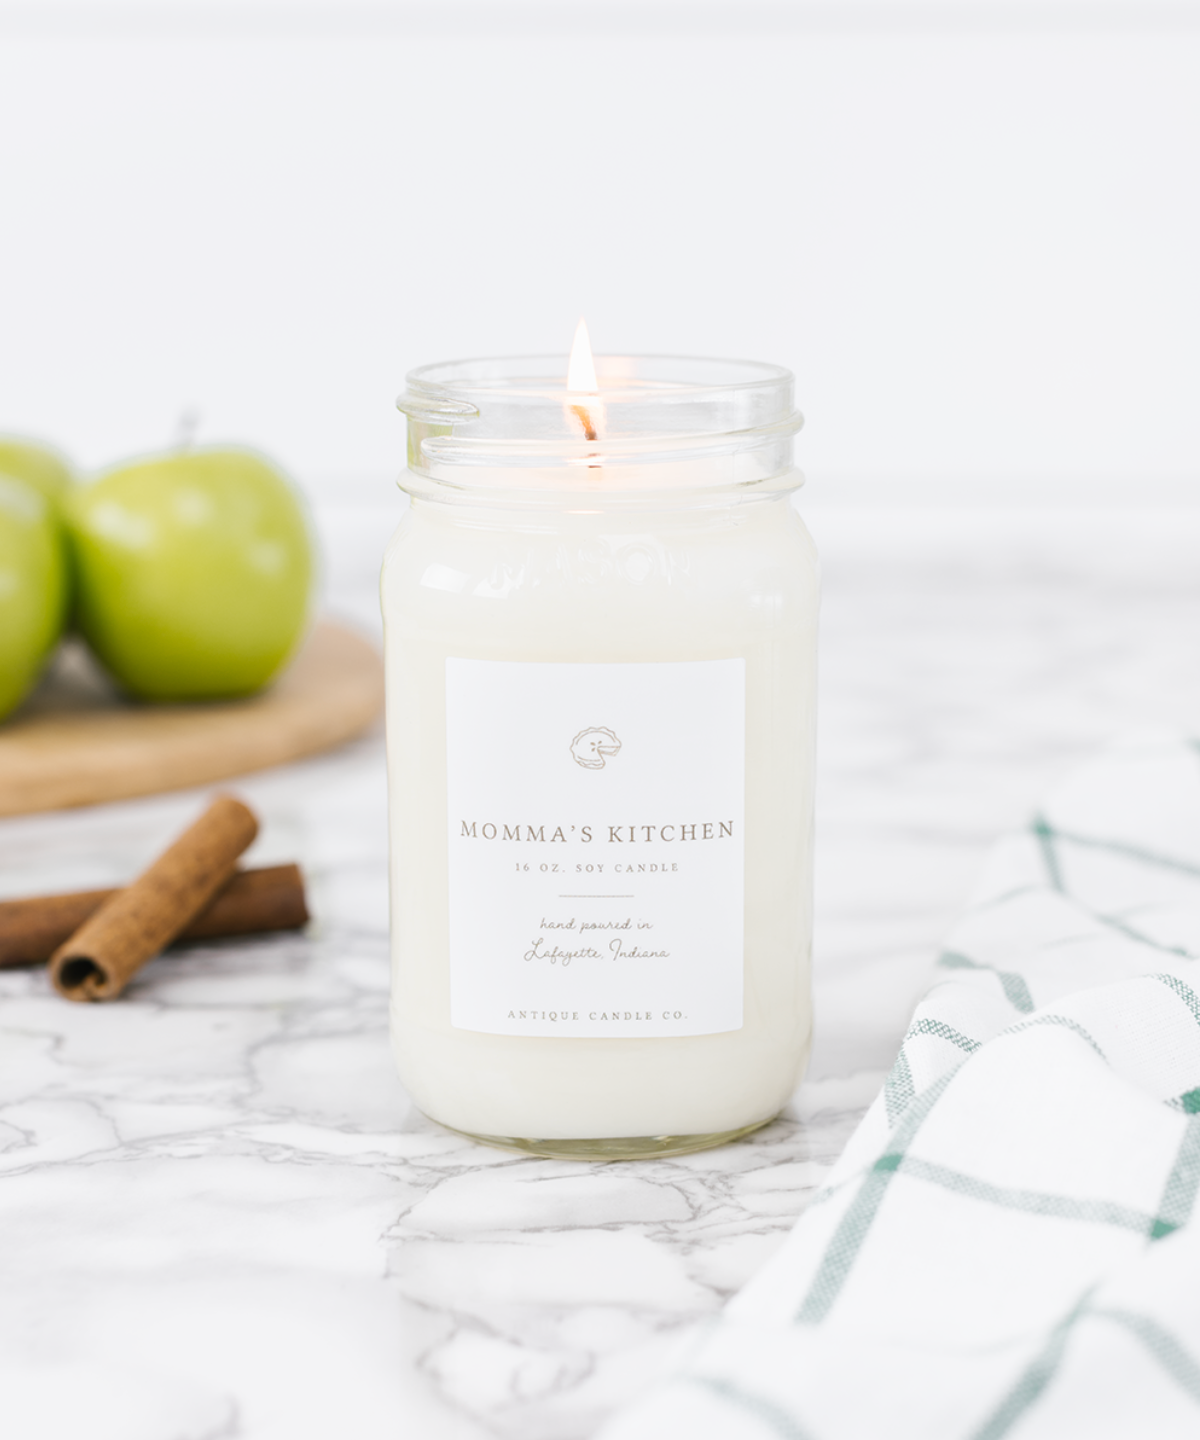 Momma's Kitchen - Antique Candle Co.